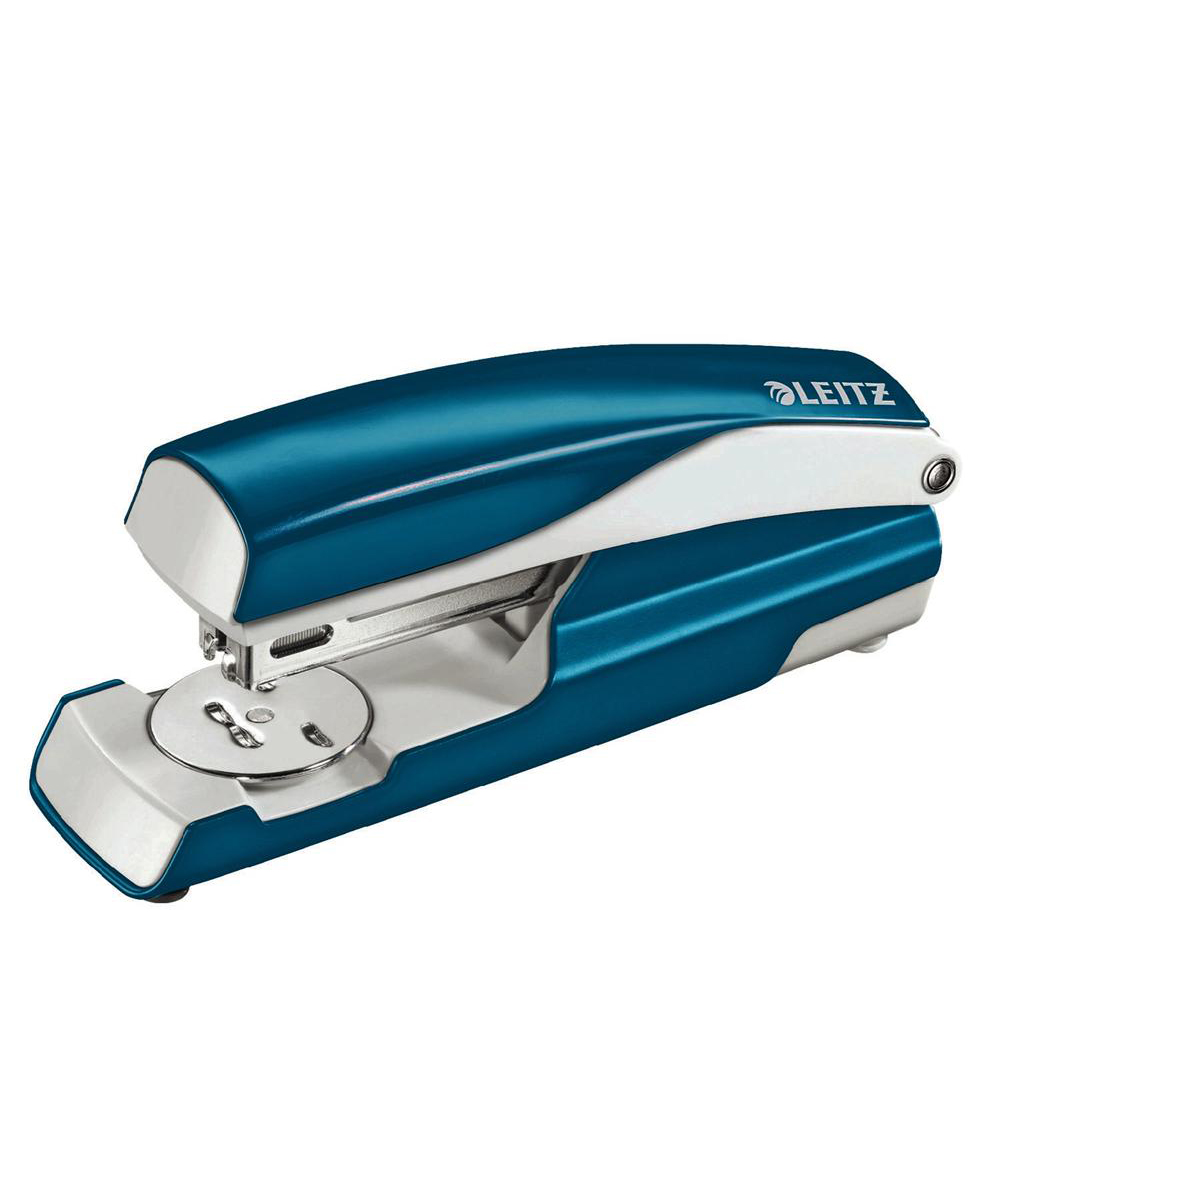 Desktop Staplers Leitz NeXXt WOW Stapler 3mm 30 Sheet Blue Ref 55021036L [REDEMPTION] Apr-Jun20